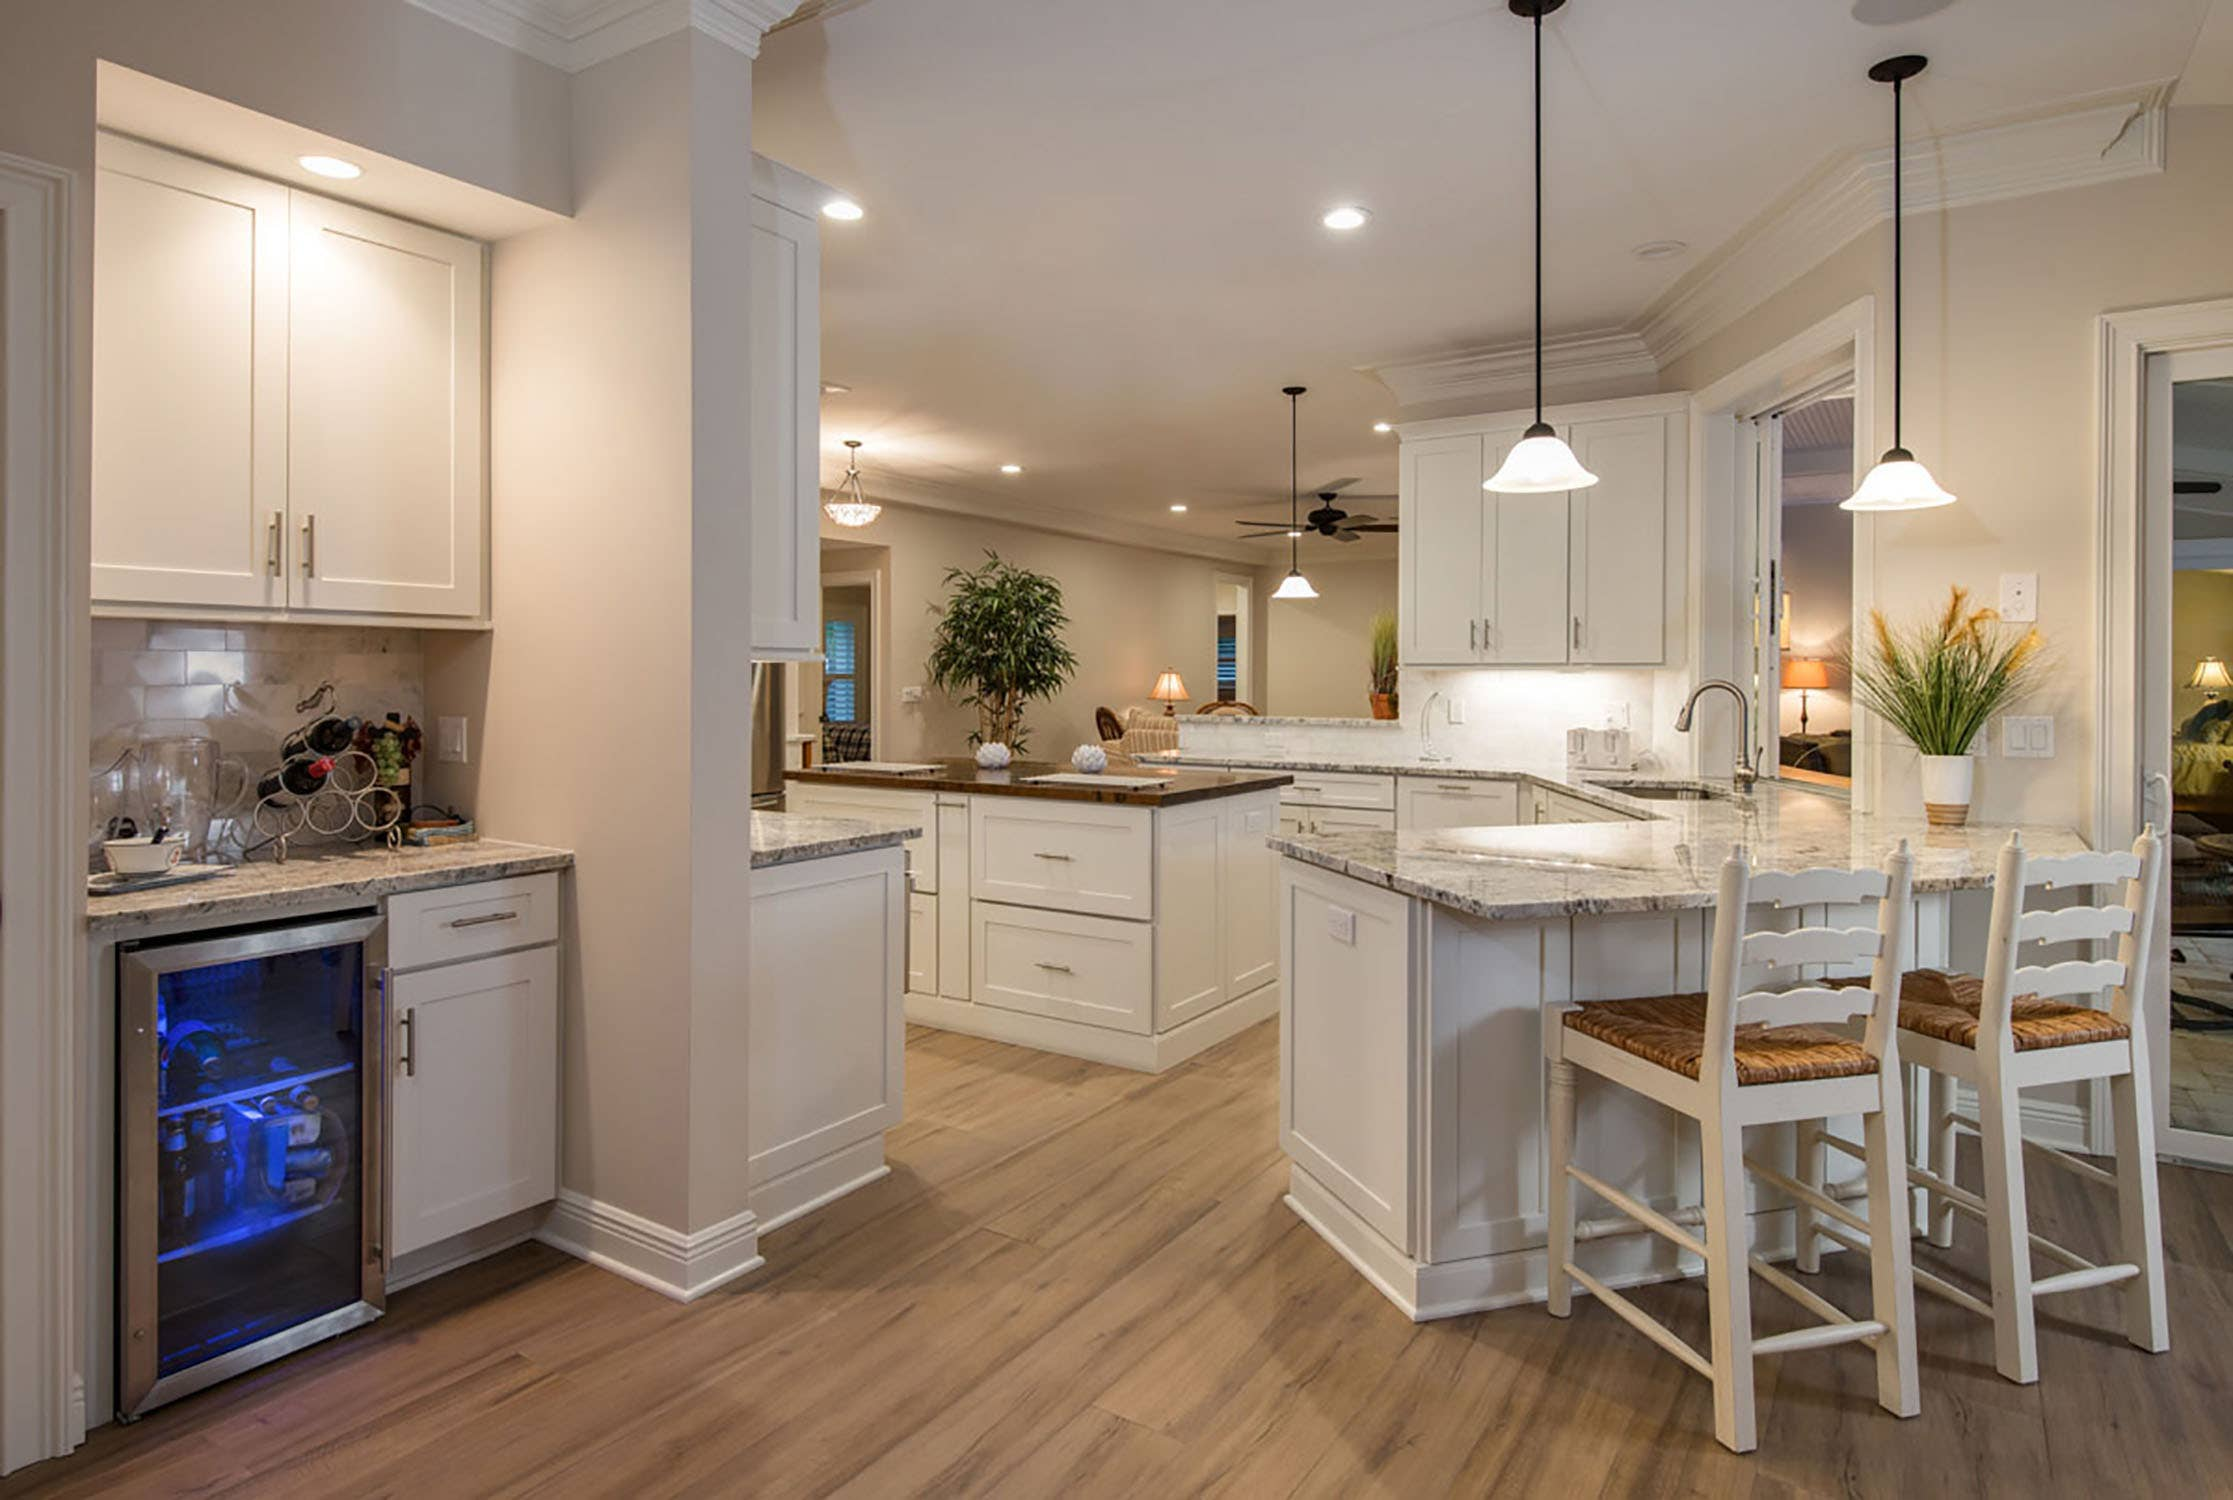 peninsula breakfast bar in white shaker cabinets in open kitchen with furniture look island